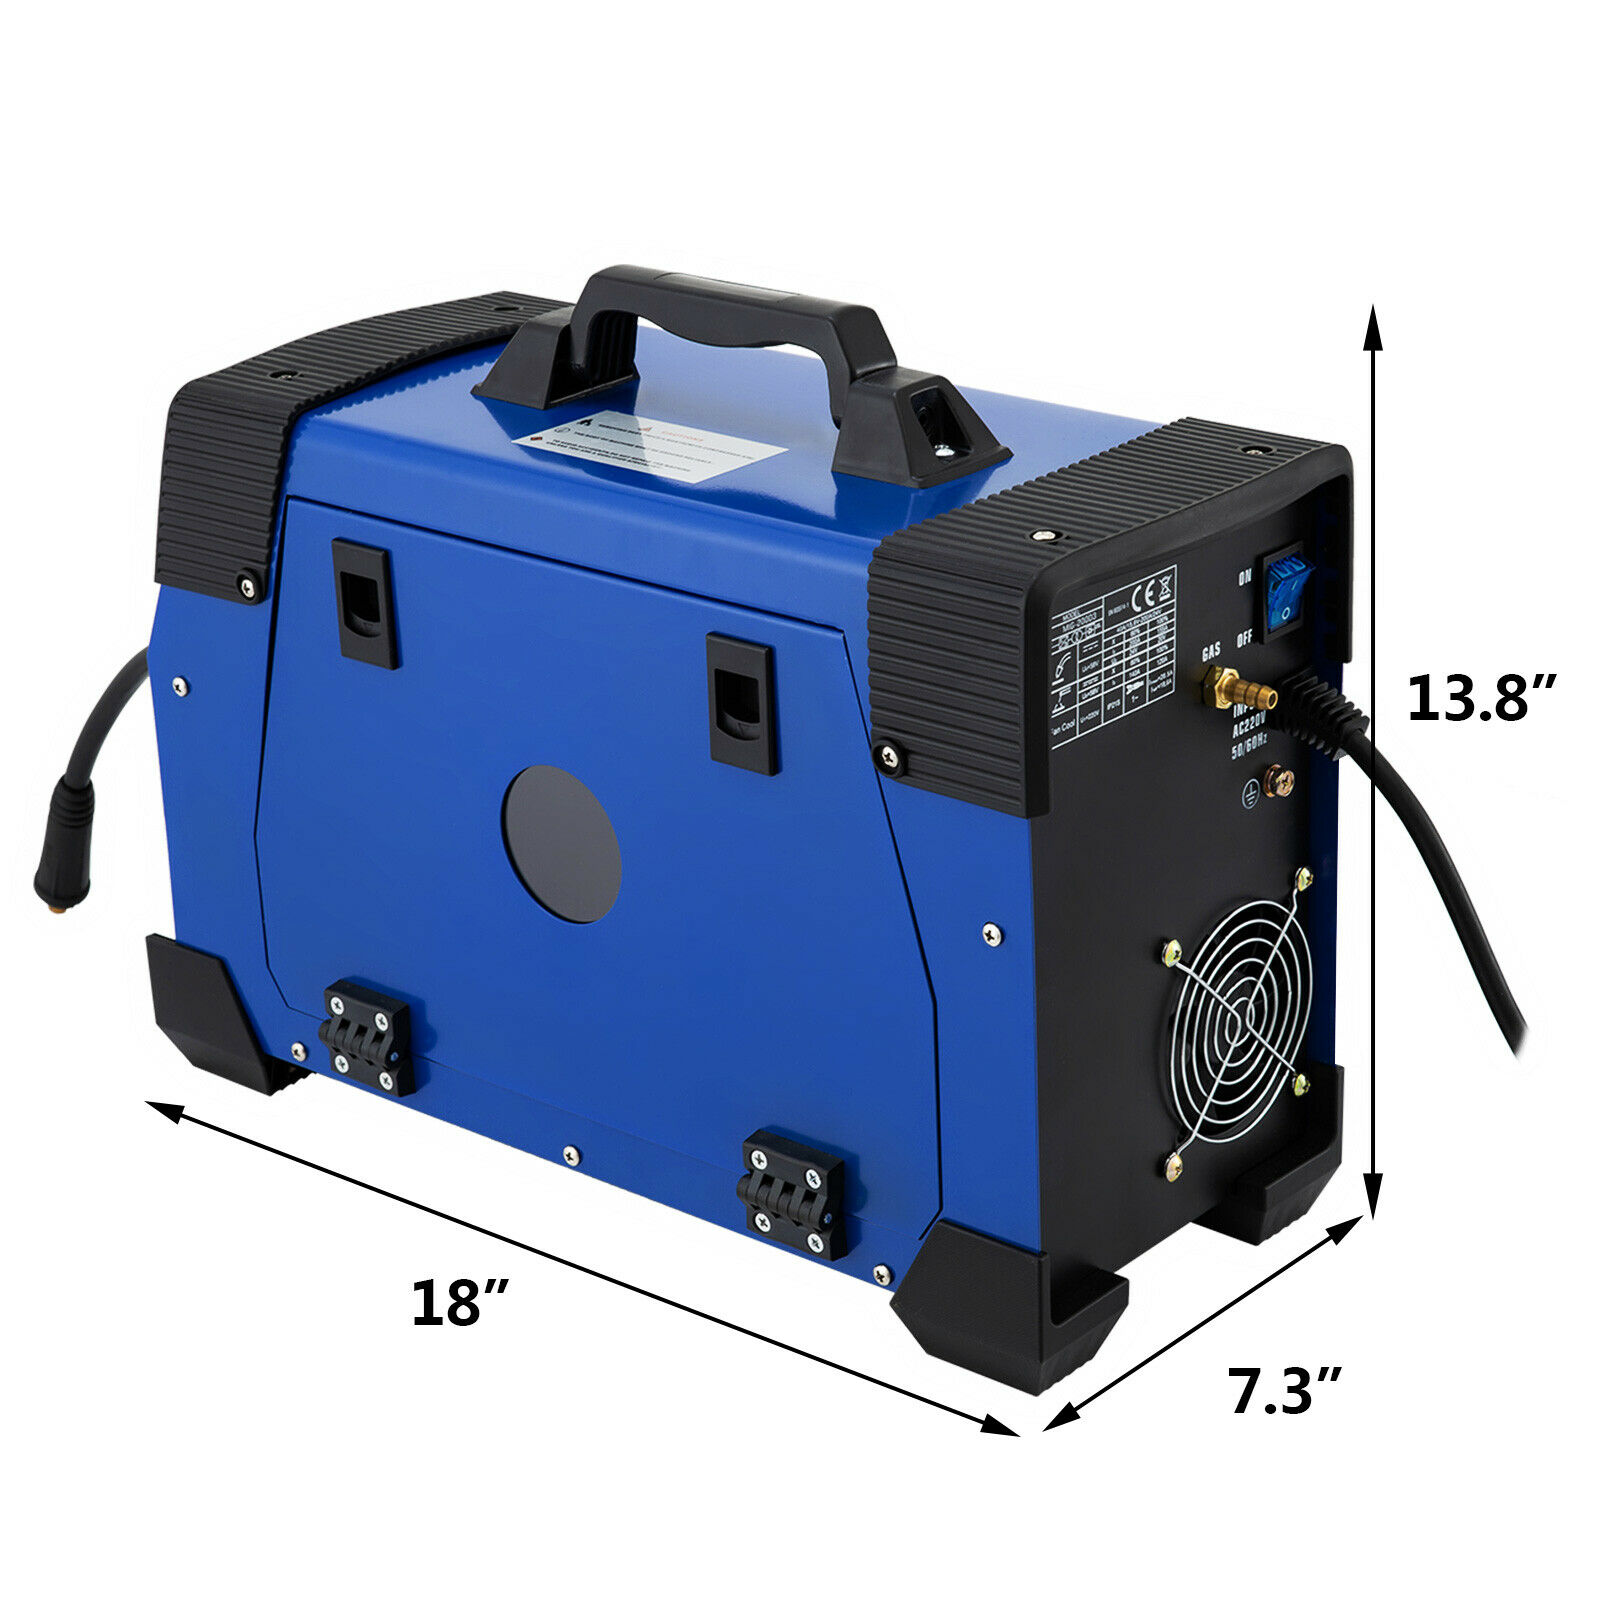 VEVOR  NEW 5 In 1 MIG / MAG / TIG /MMA Inverter Welder 200Amp Combo Welding Machine With Free Shipping